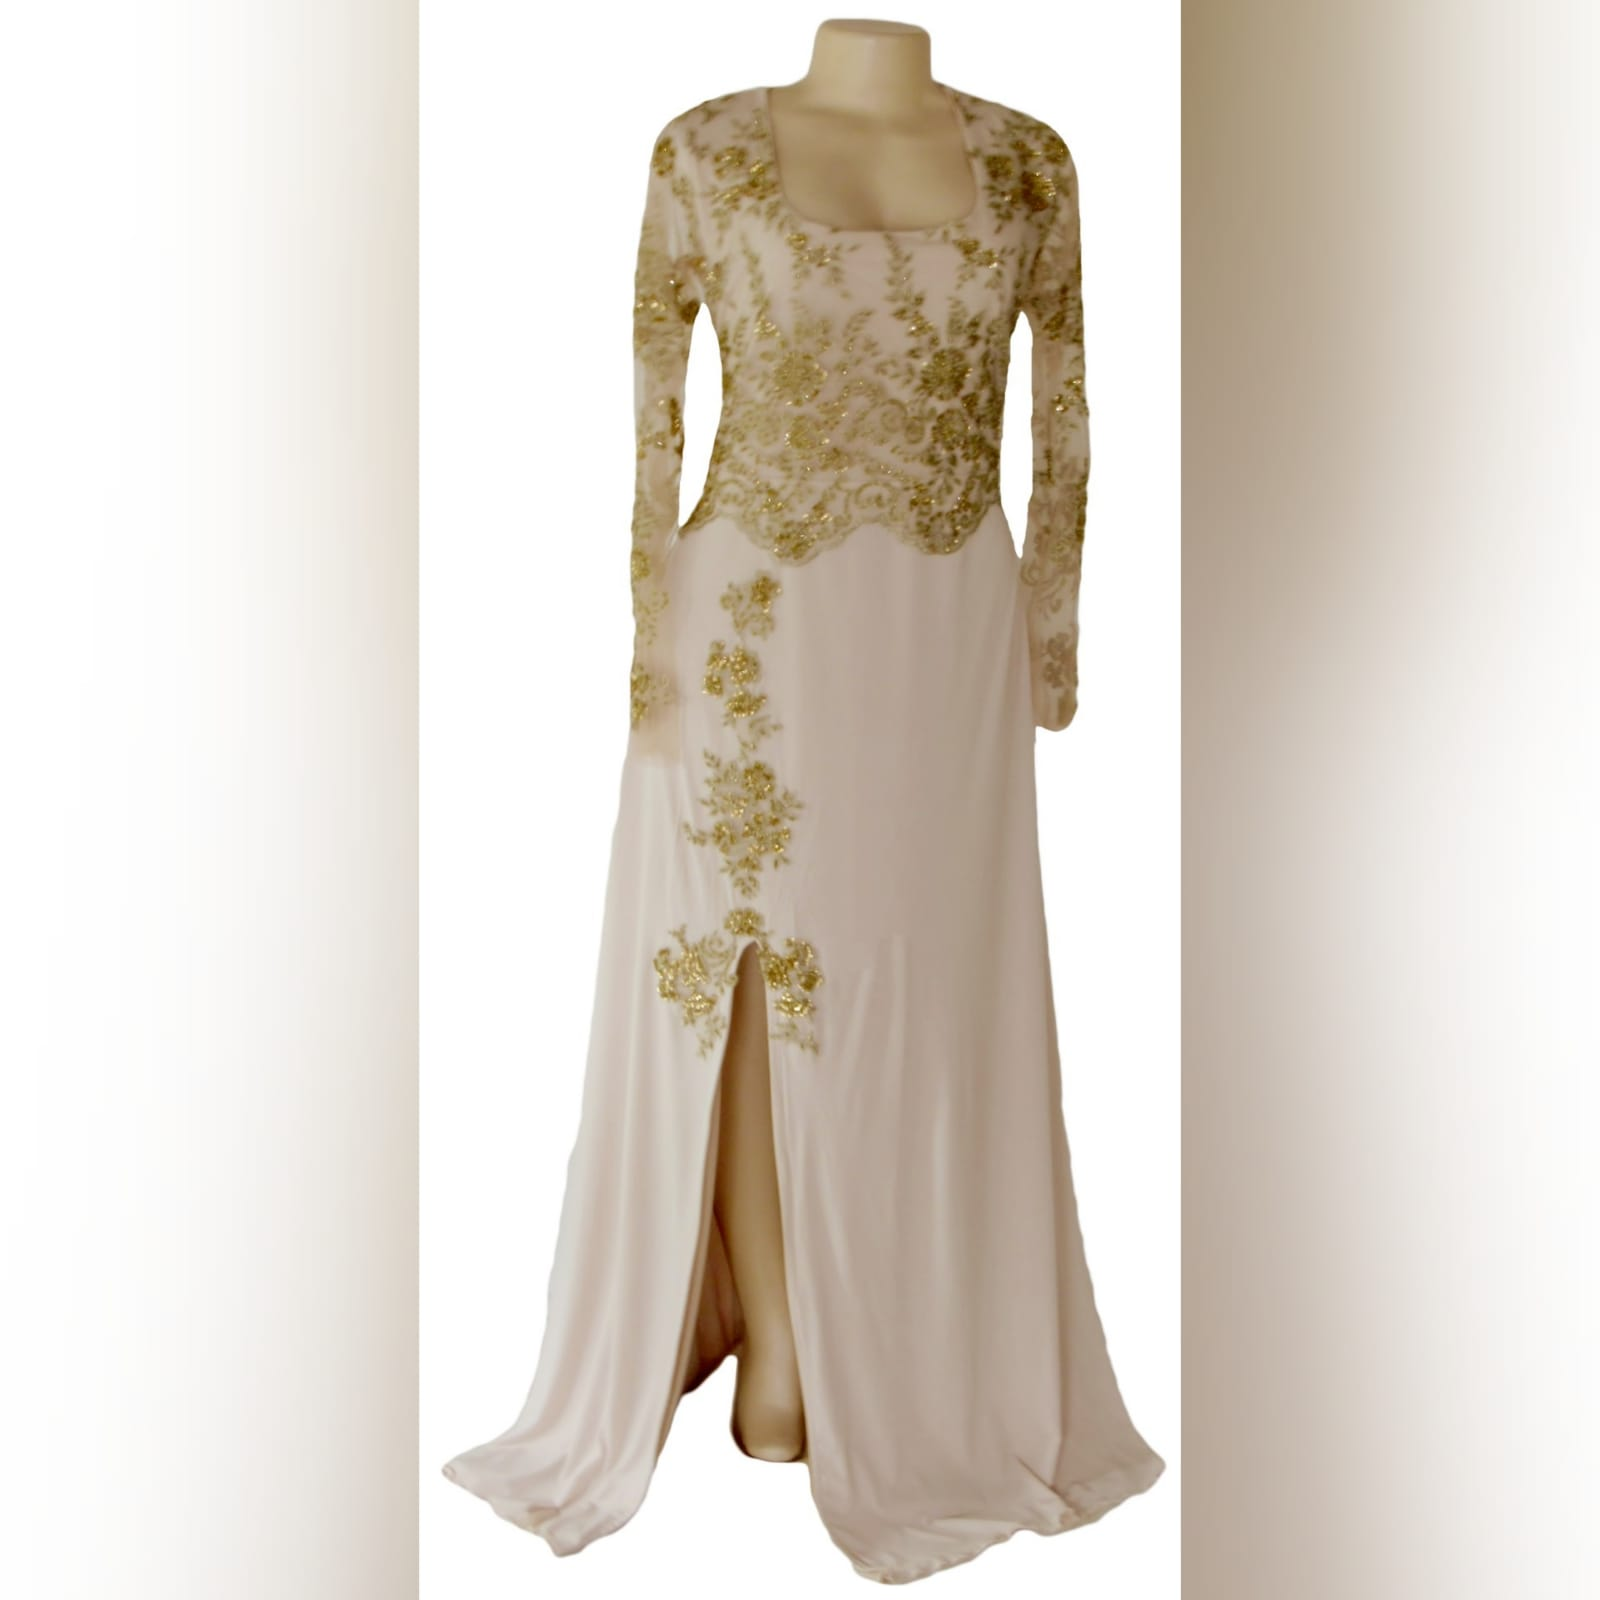 Nude and gold long evening dress 2 nude and gold long evening dress. Bodice detailed with gold beaded lace with long she sleeves, with a slit